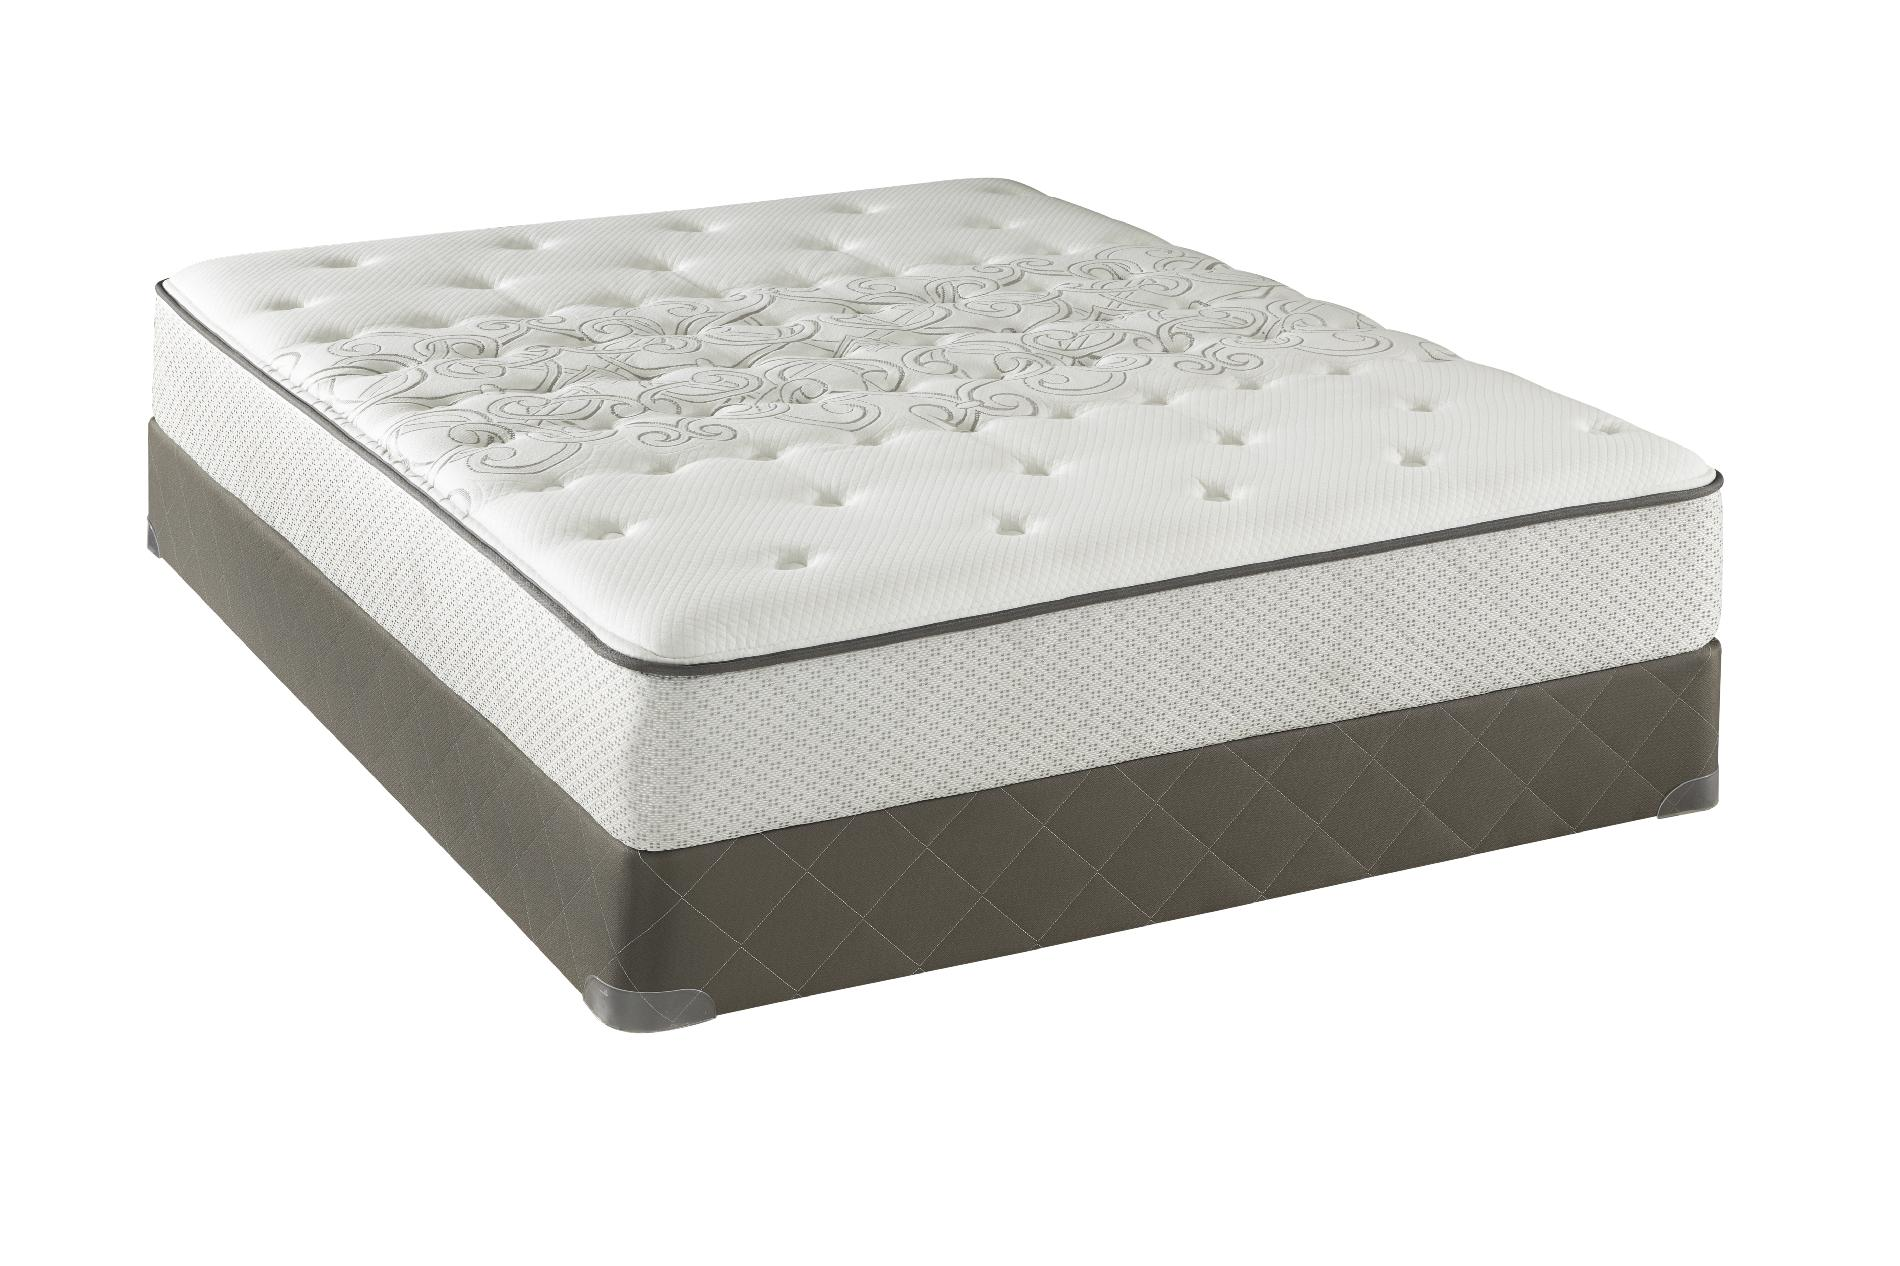 Sealy Posturepedic Alderwood Manor Ti II, Cushion Firm, King Mattress Only